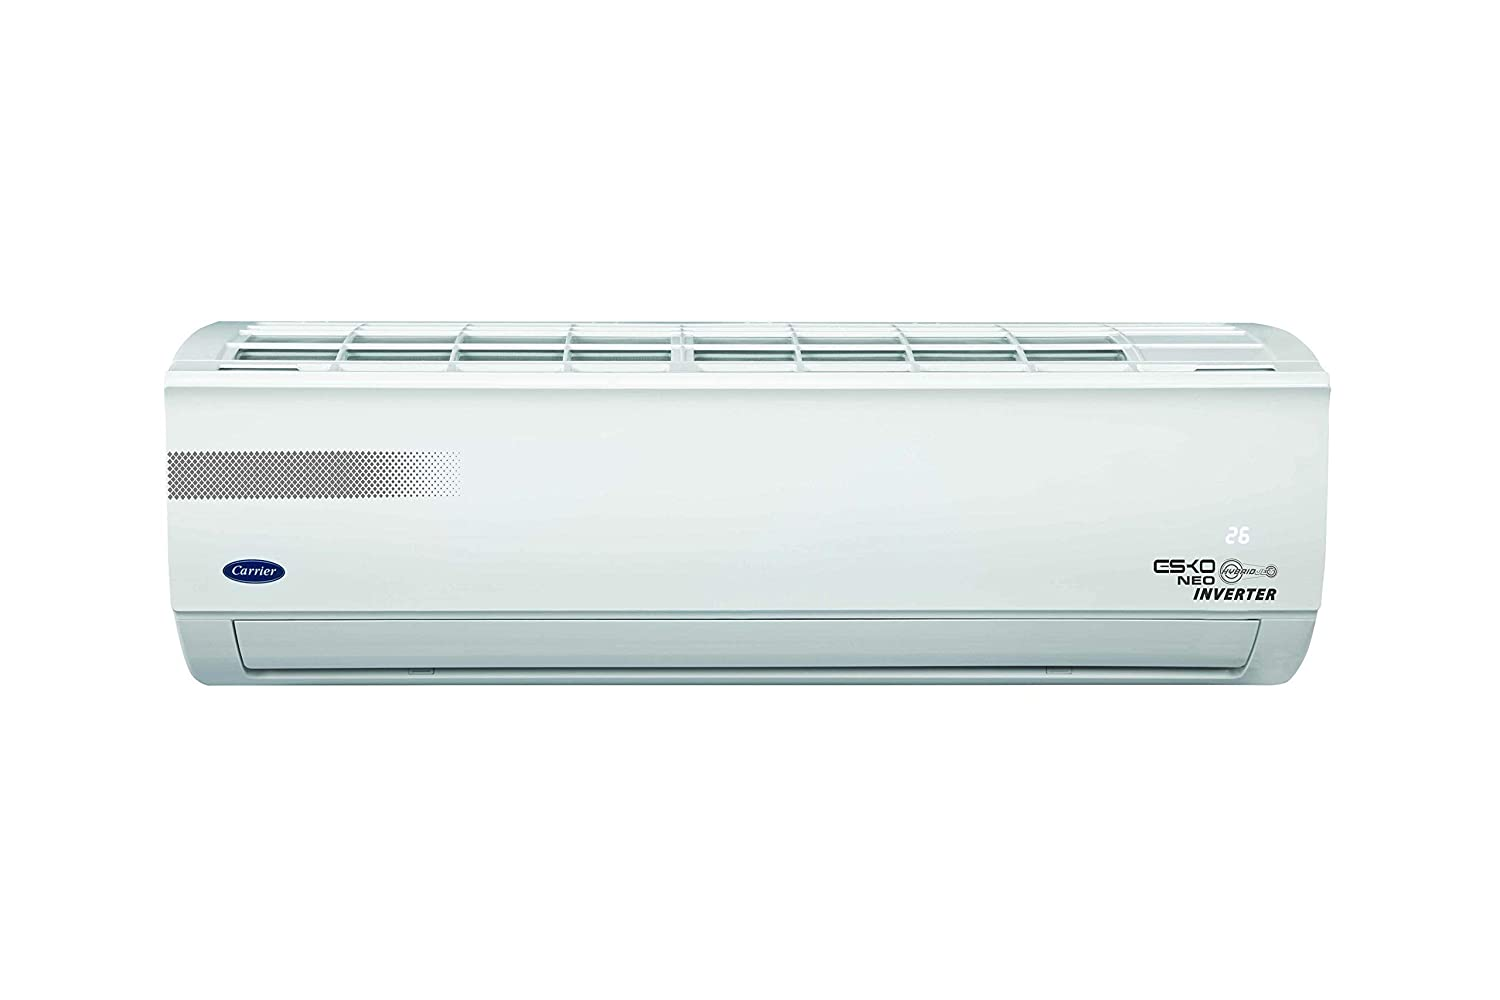 Carrier 1.5 Ton 5 Star Inverter Split AC (Copper, ESKO NEO HYBRIDJET INV R32, CAI18EK5R39F0, White)